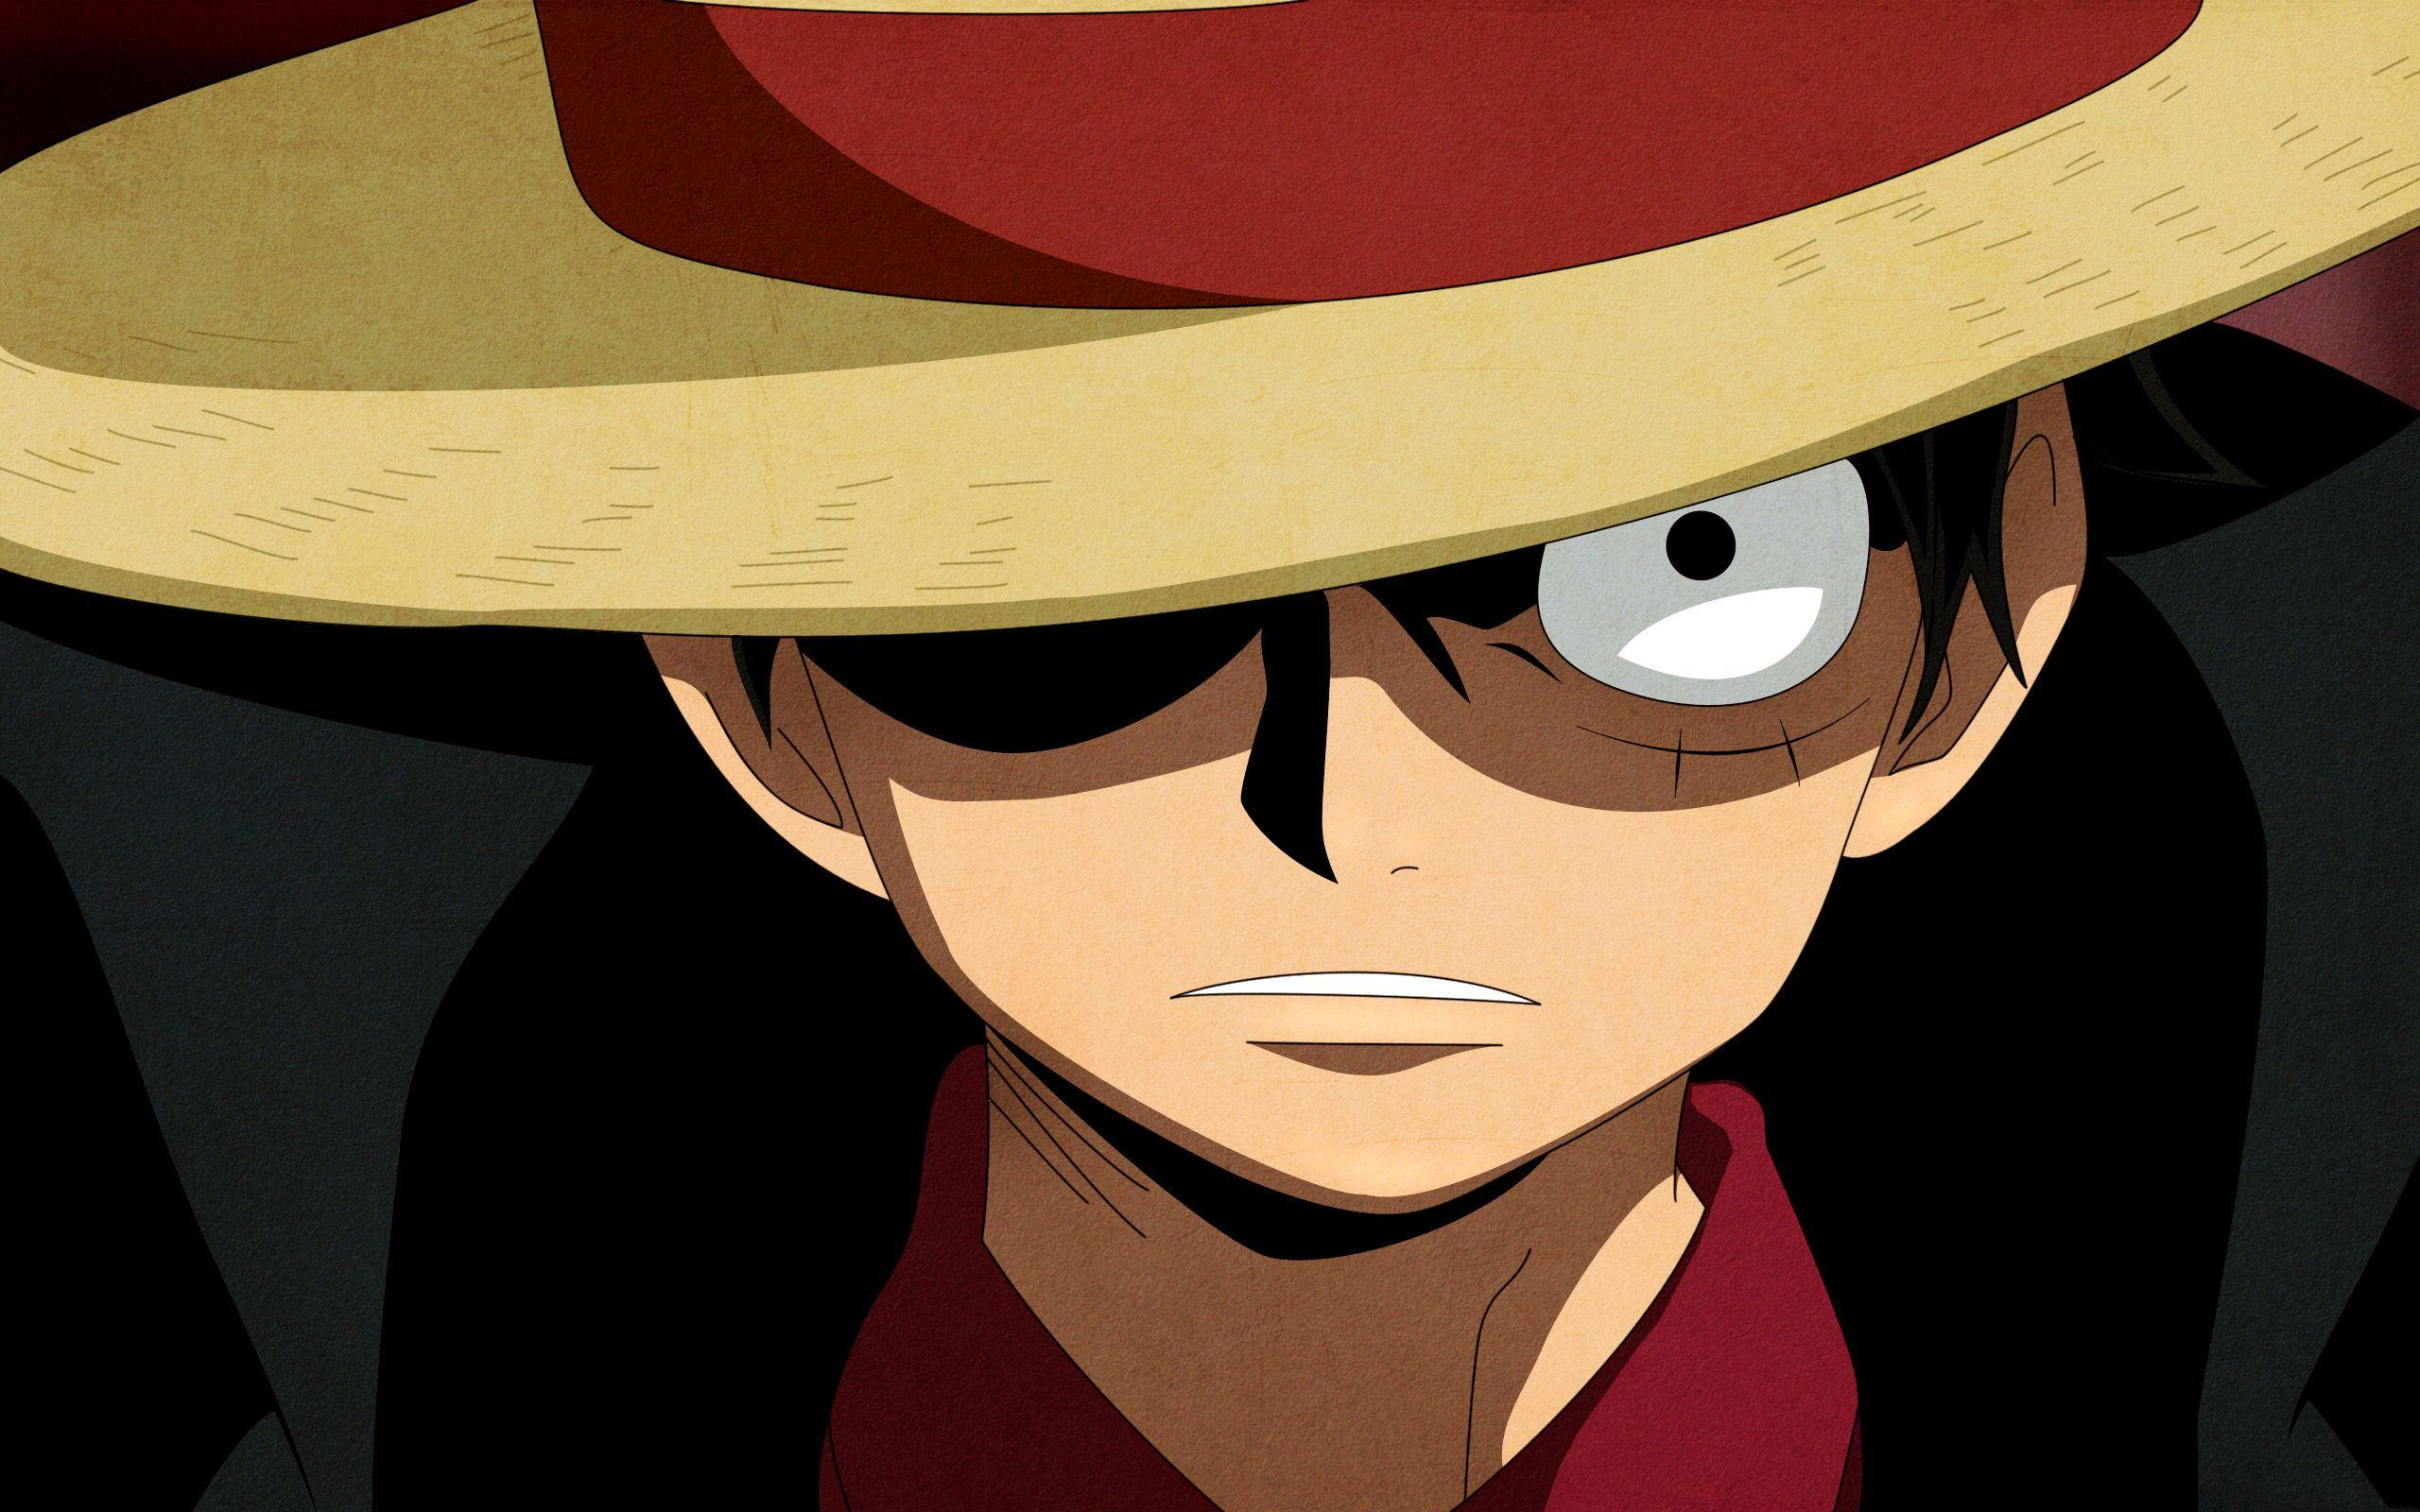 897x605 monkey d luffy iphone wallpapers 320x480 phone hd wallpaper pictures. Luffy Wallpapers Top Free Luffy Backgrounds Wallpaperaccess